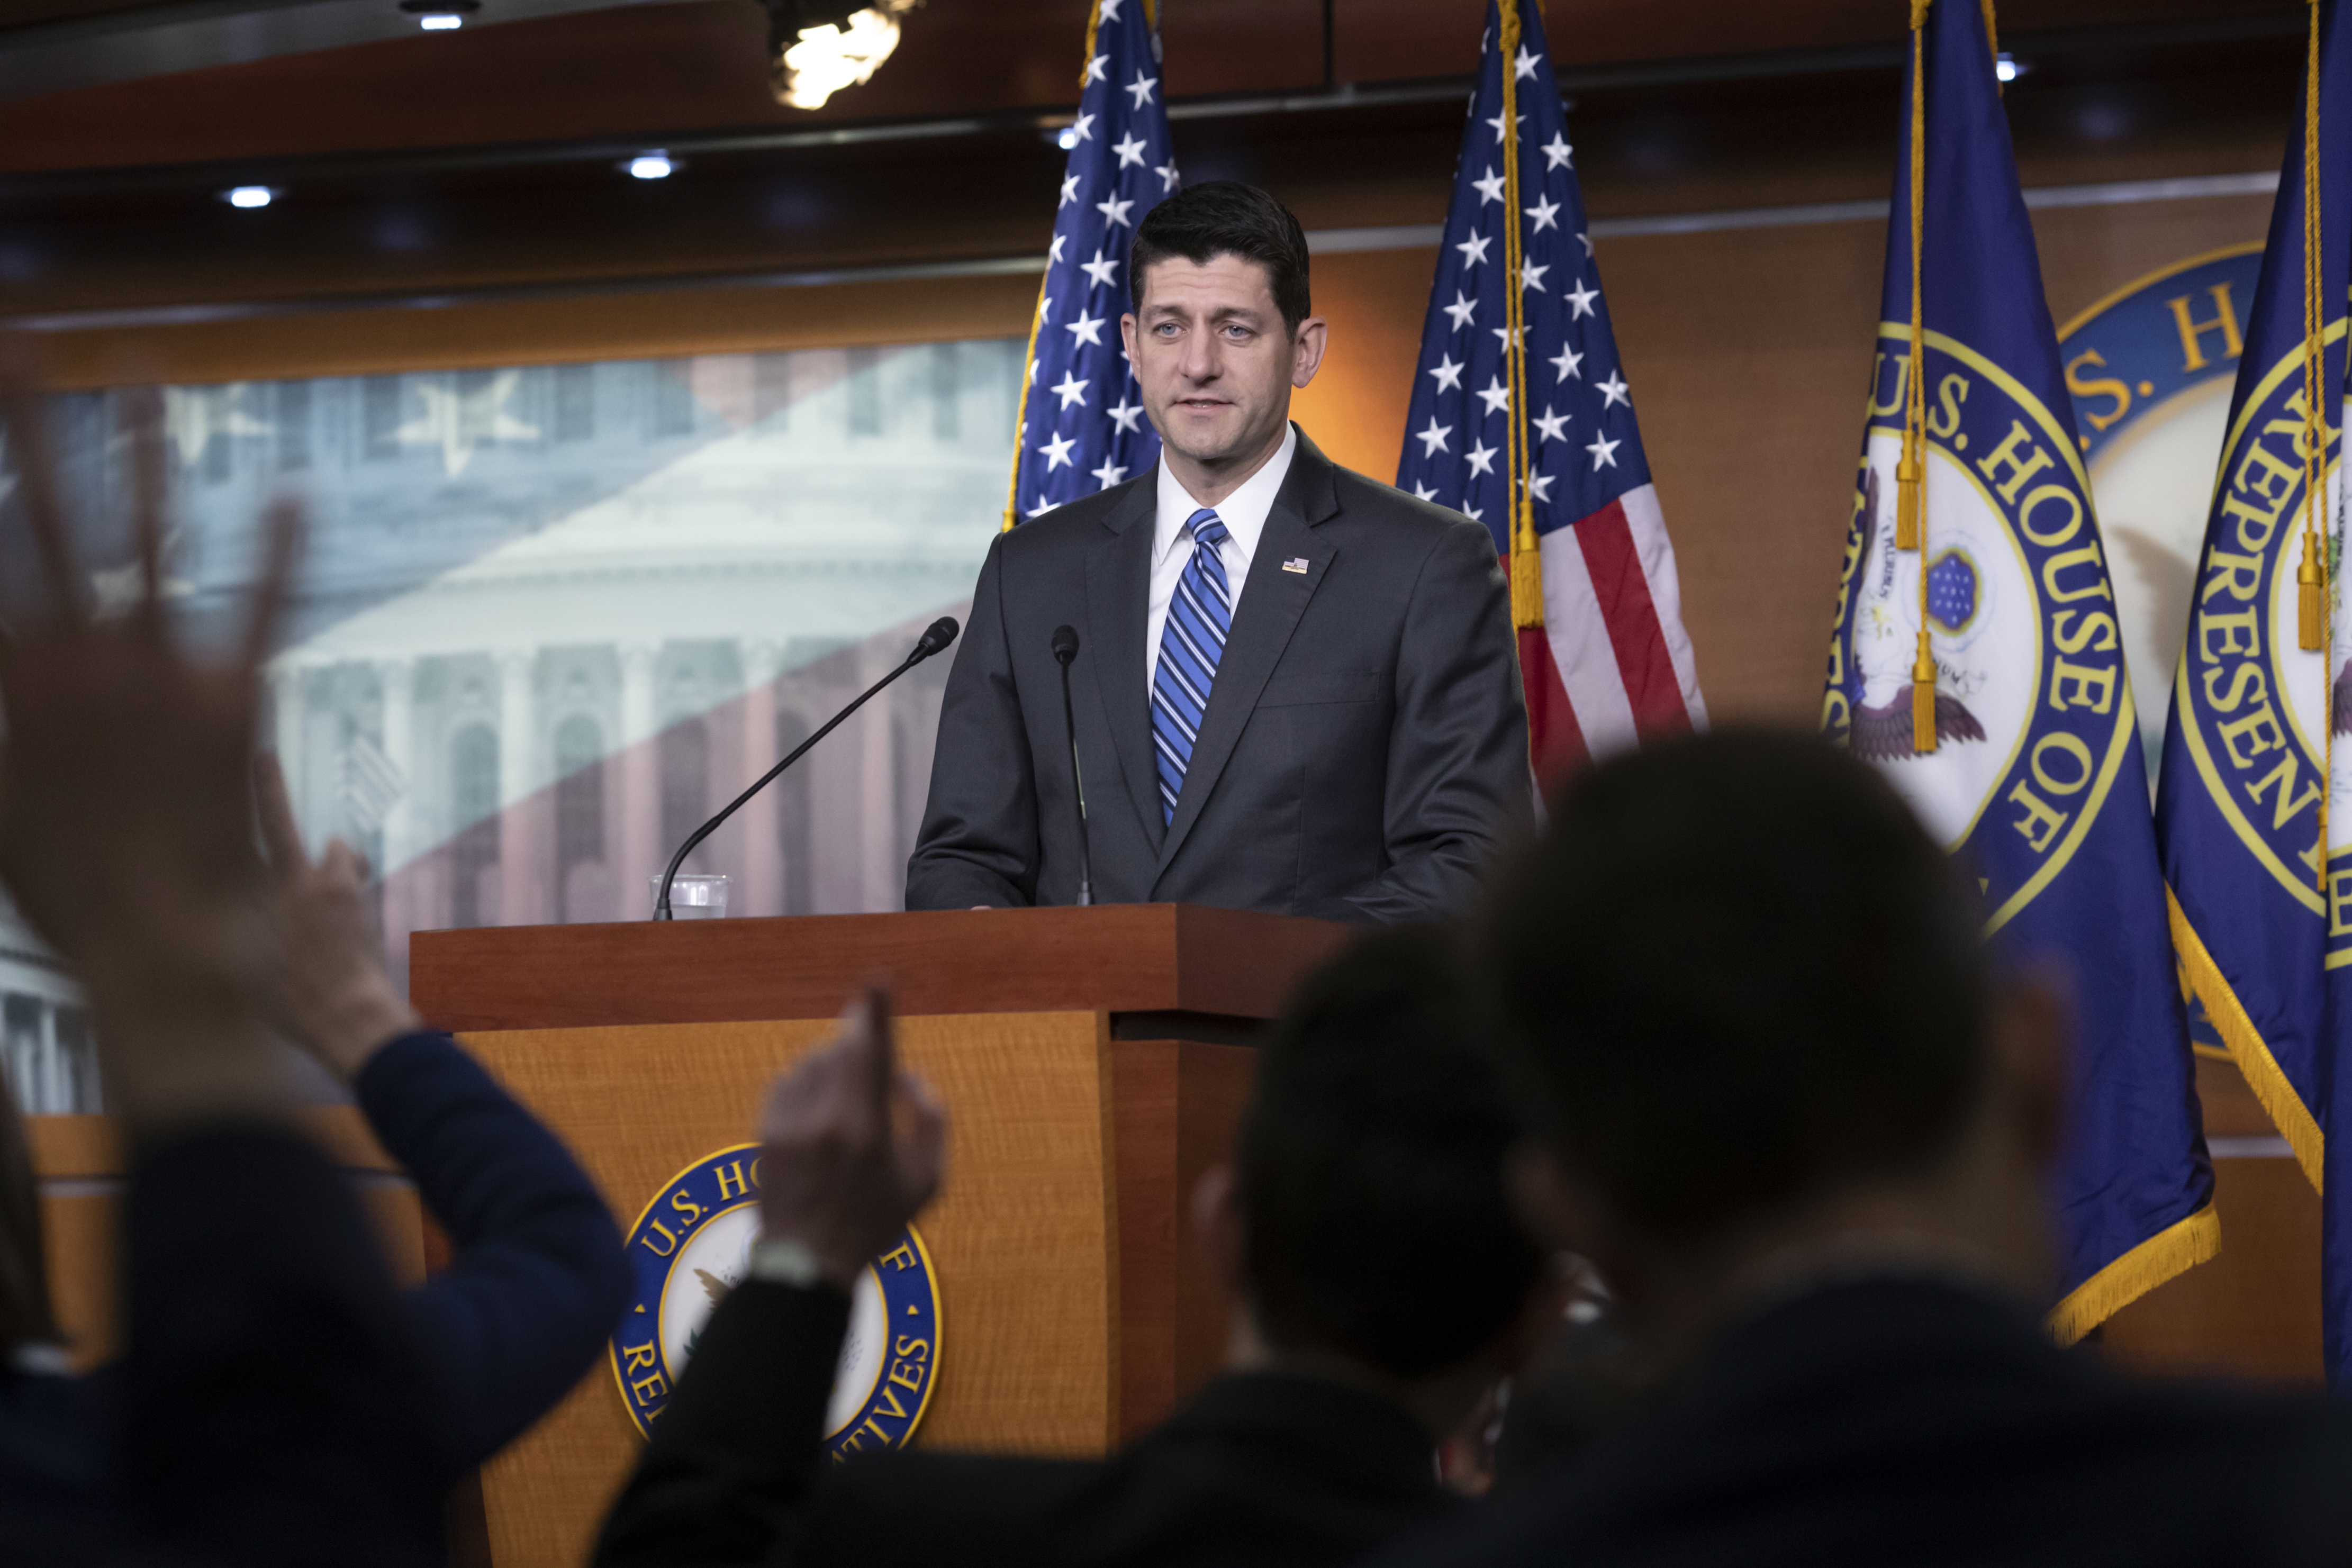 Speaker of the House Paul Ryan, R-Wis., promotes this year's renewal of the farm bill during a news conference on Capitol Hill in Washington, Thursday, May 17, 2018. GOP leaders crafted the bill as a measure for tightening work and job training requirements for food stamps, but failed to get it passed. (J. Scott Applewhite/AP)